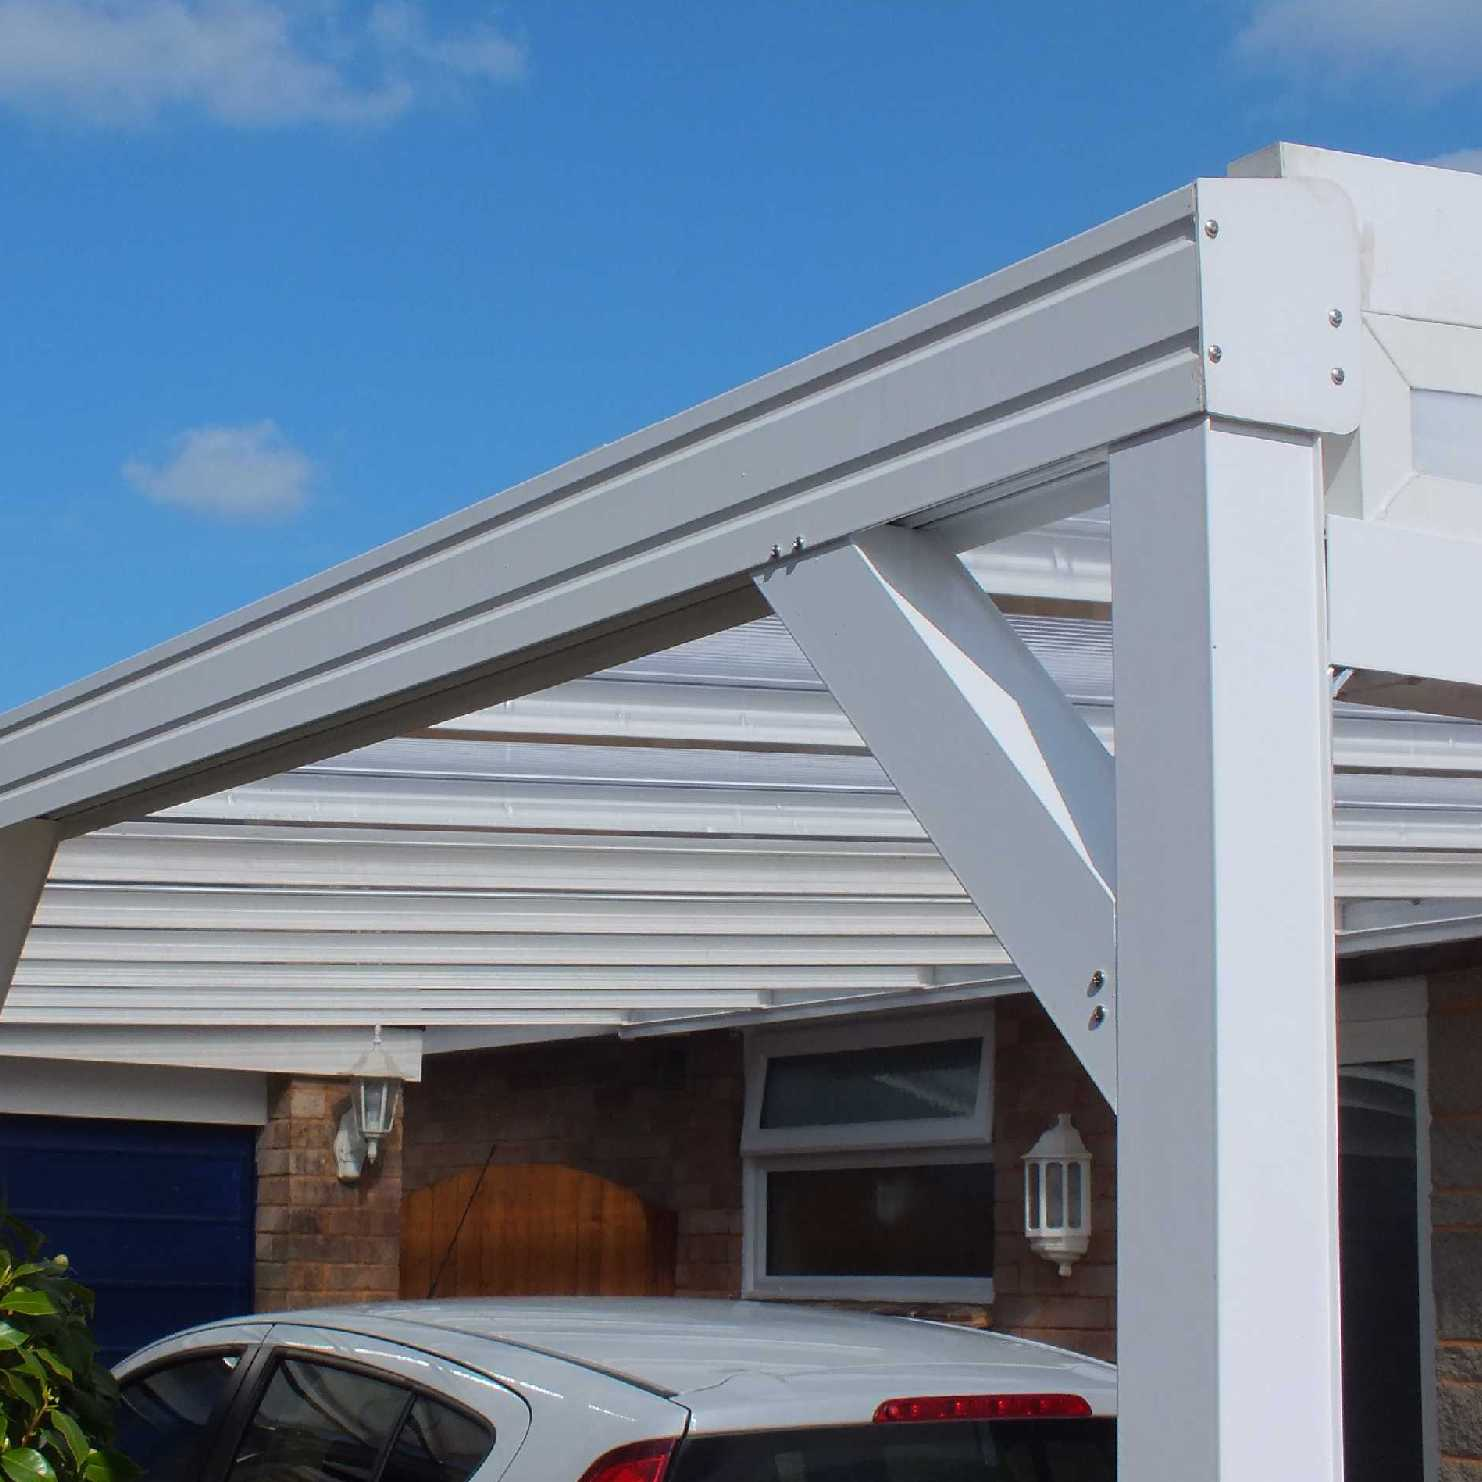 Great deals on Omega Smart White Lean-To Canopy with 16mm Polycarbonate Glazing - 9.2m (W) x 4.0m (P), (5) Supporting Posts